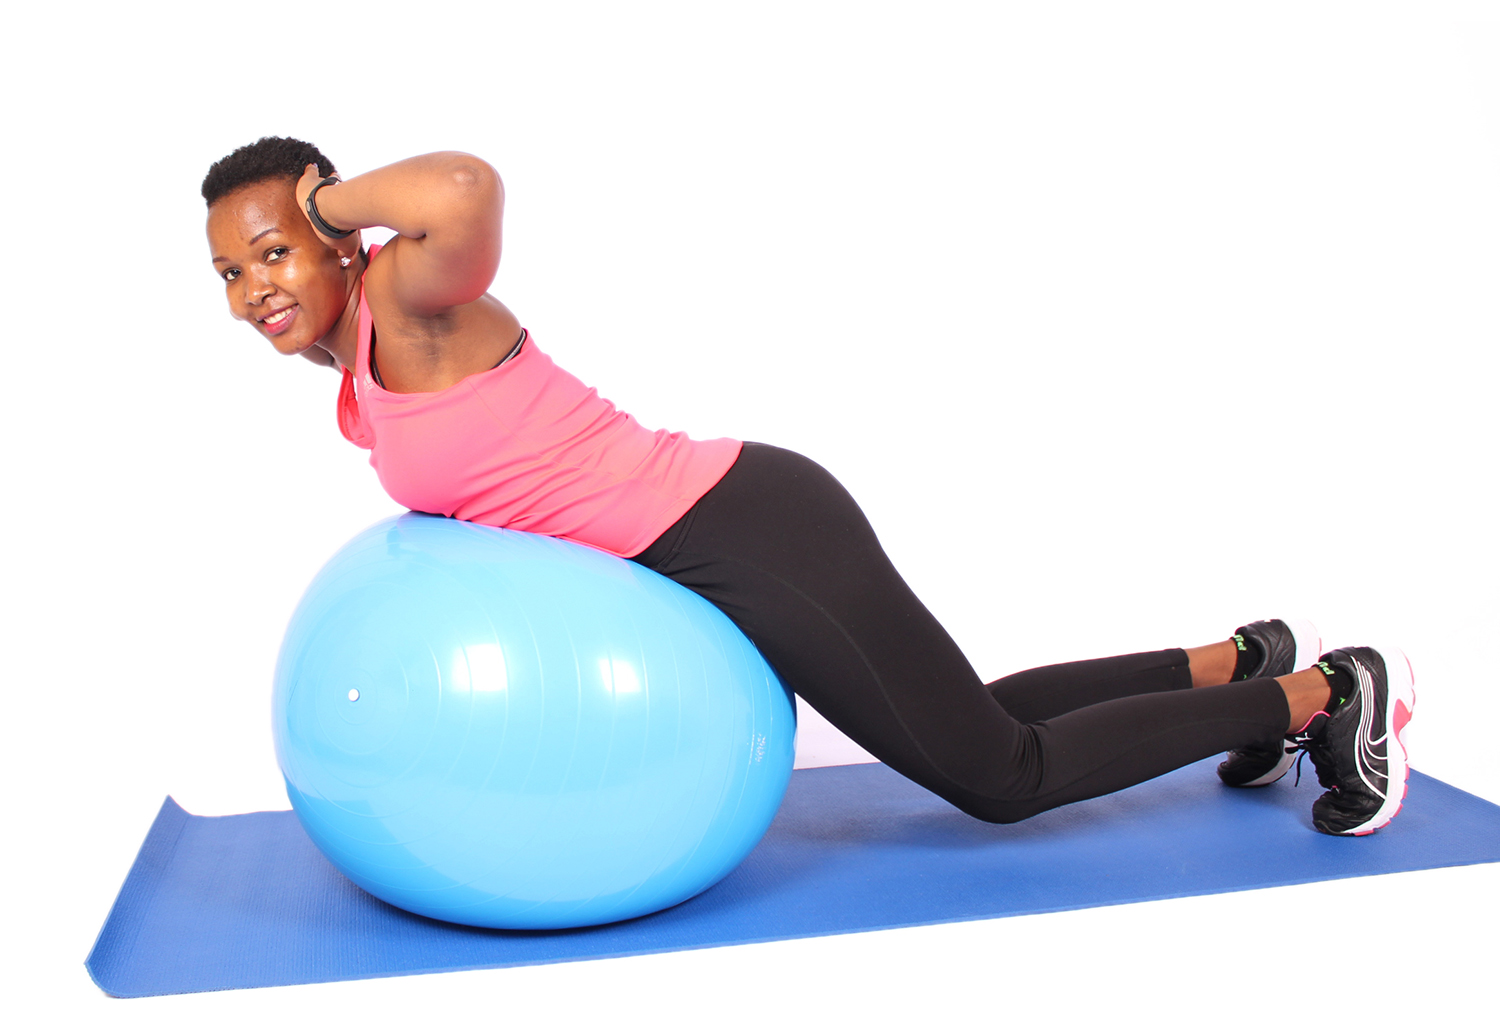 Smiling woman doing core exercise on swiss ball